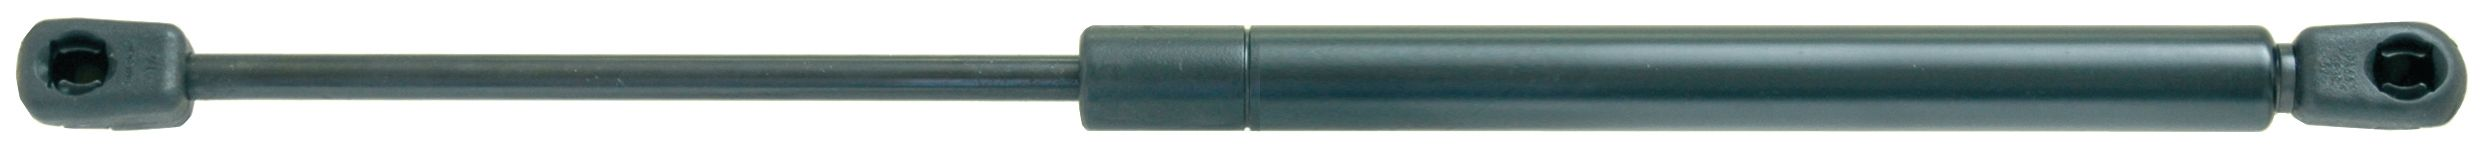 FORD NEW HOLLAND GAS STRUT